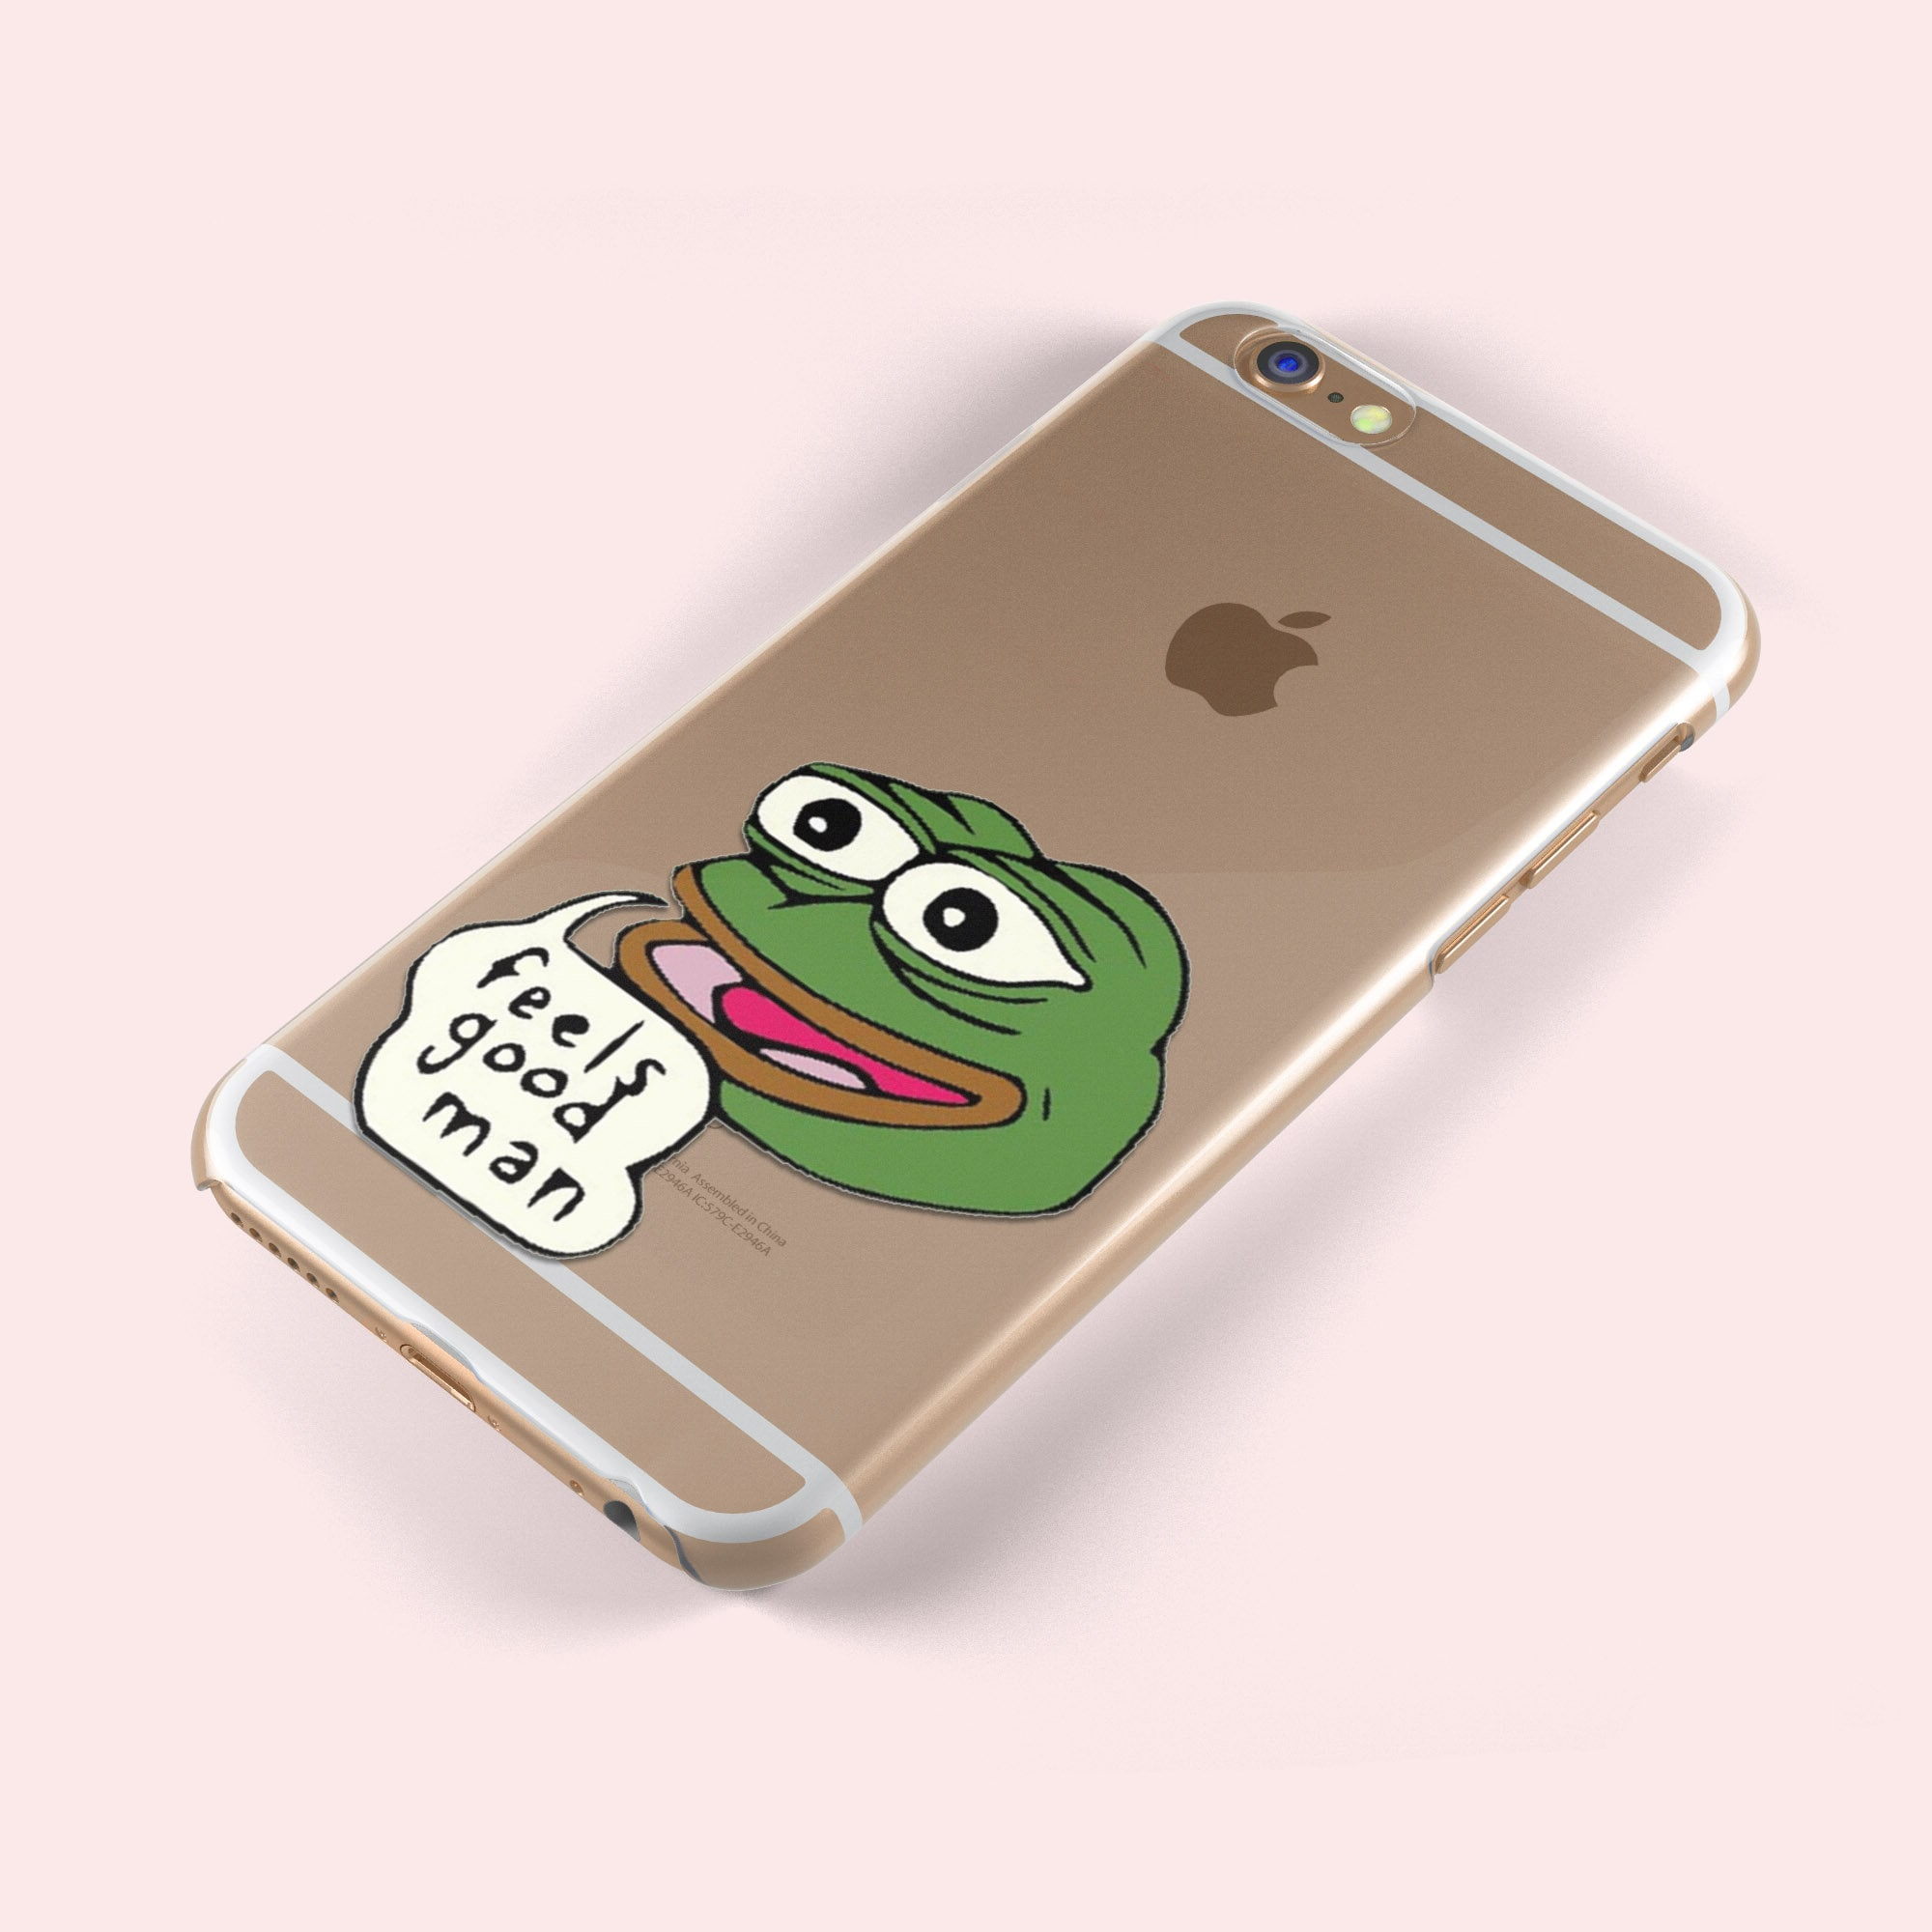 promo code 01a12 f5f34 Pepe the Frog Feels Good Man Reddit Dank iphone X 5 S SE 6 6S Plus 7 8  Samsung Galaxy S5 S6 S7 S8 S9 Edge TPU Soft Silicone Skin Gel Case